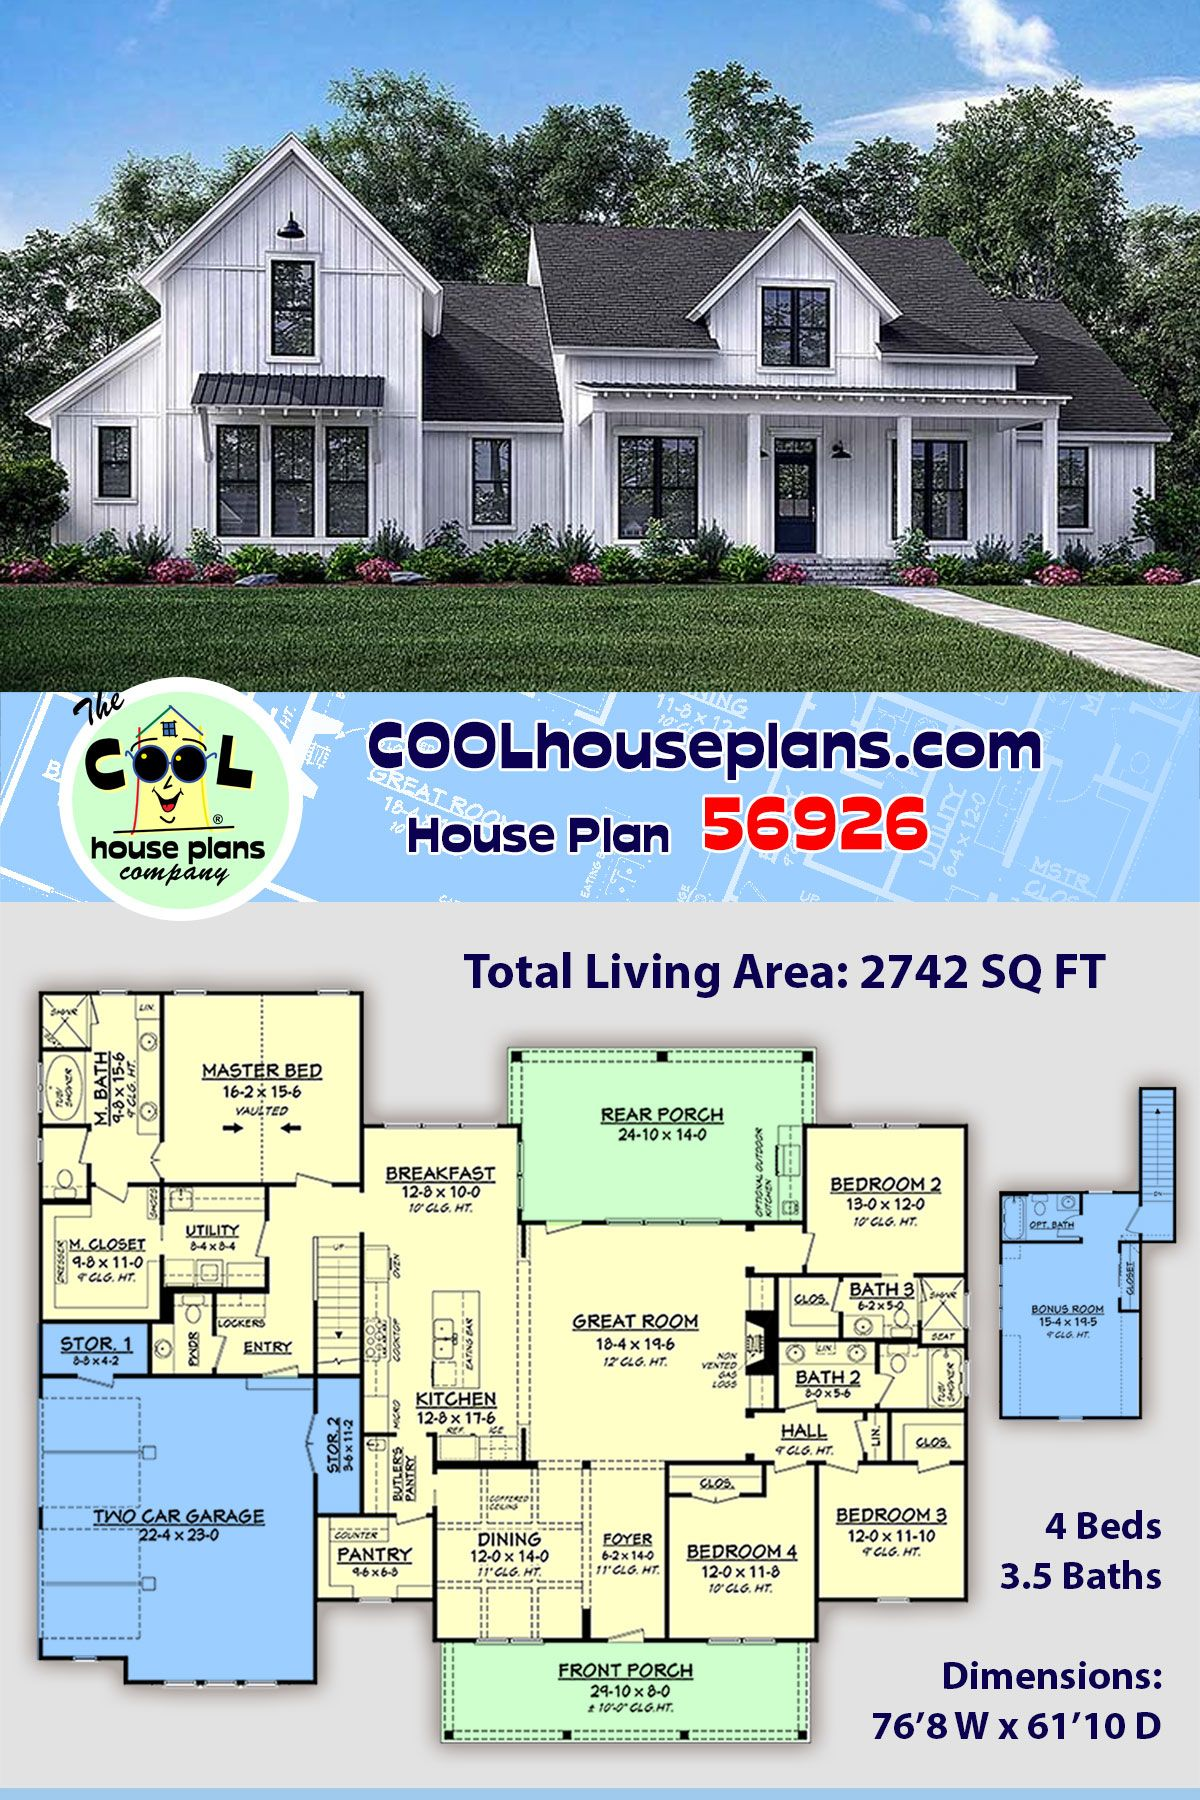 Southern Style House Plan 56926 With 4 Bed 4 Bath 2 Car Garage House Plans Southern Style House Plans Brick Exterior House